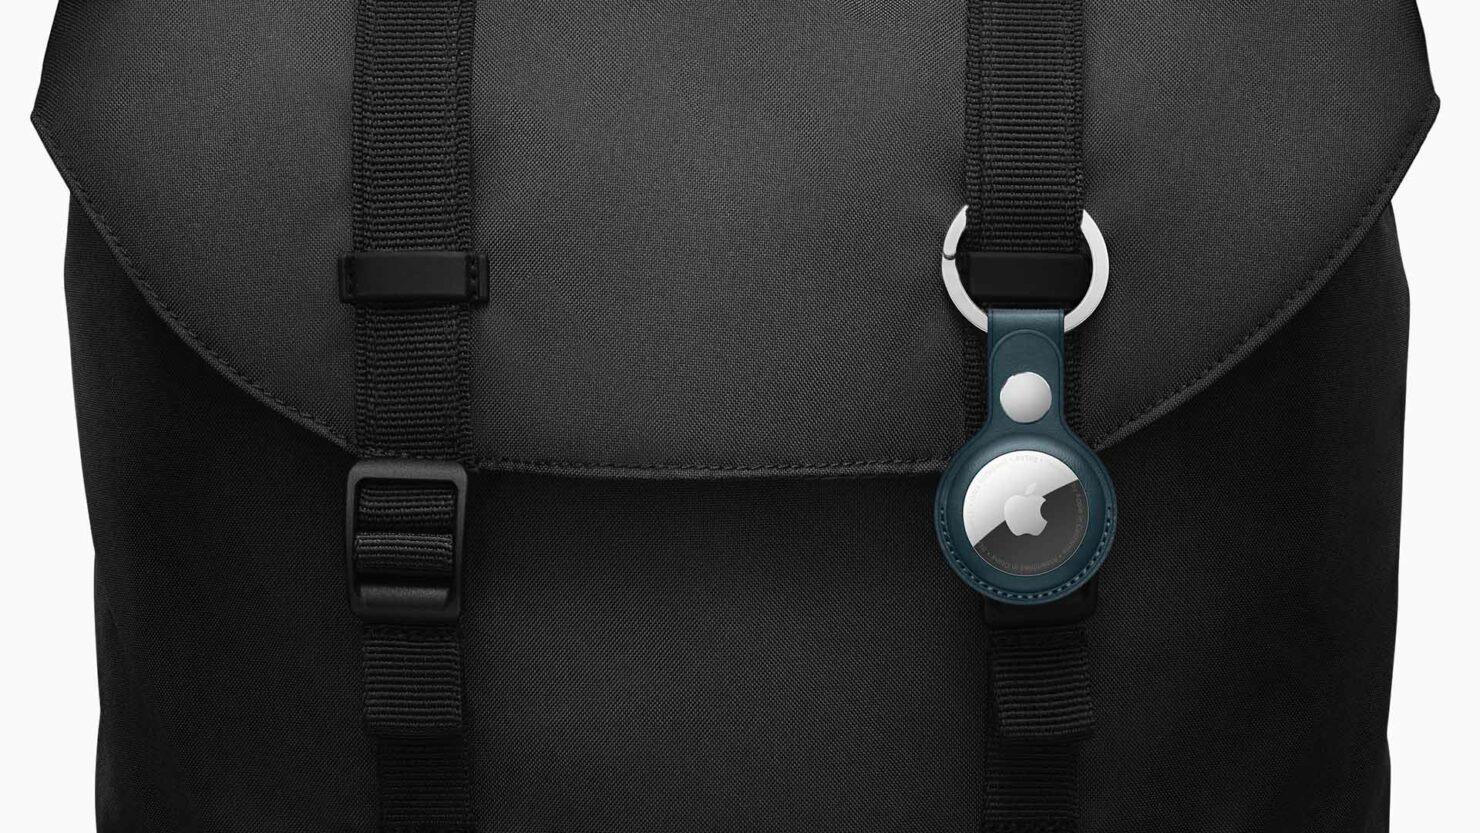 AirTags Can Be Used for Covert Stalking; Apple's Measures to Prevent Them Are Not Enough, Says Report